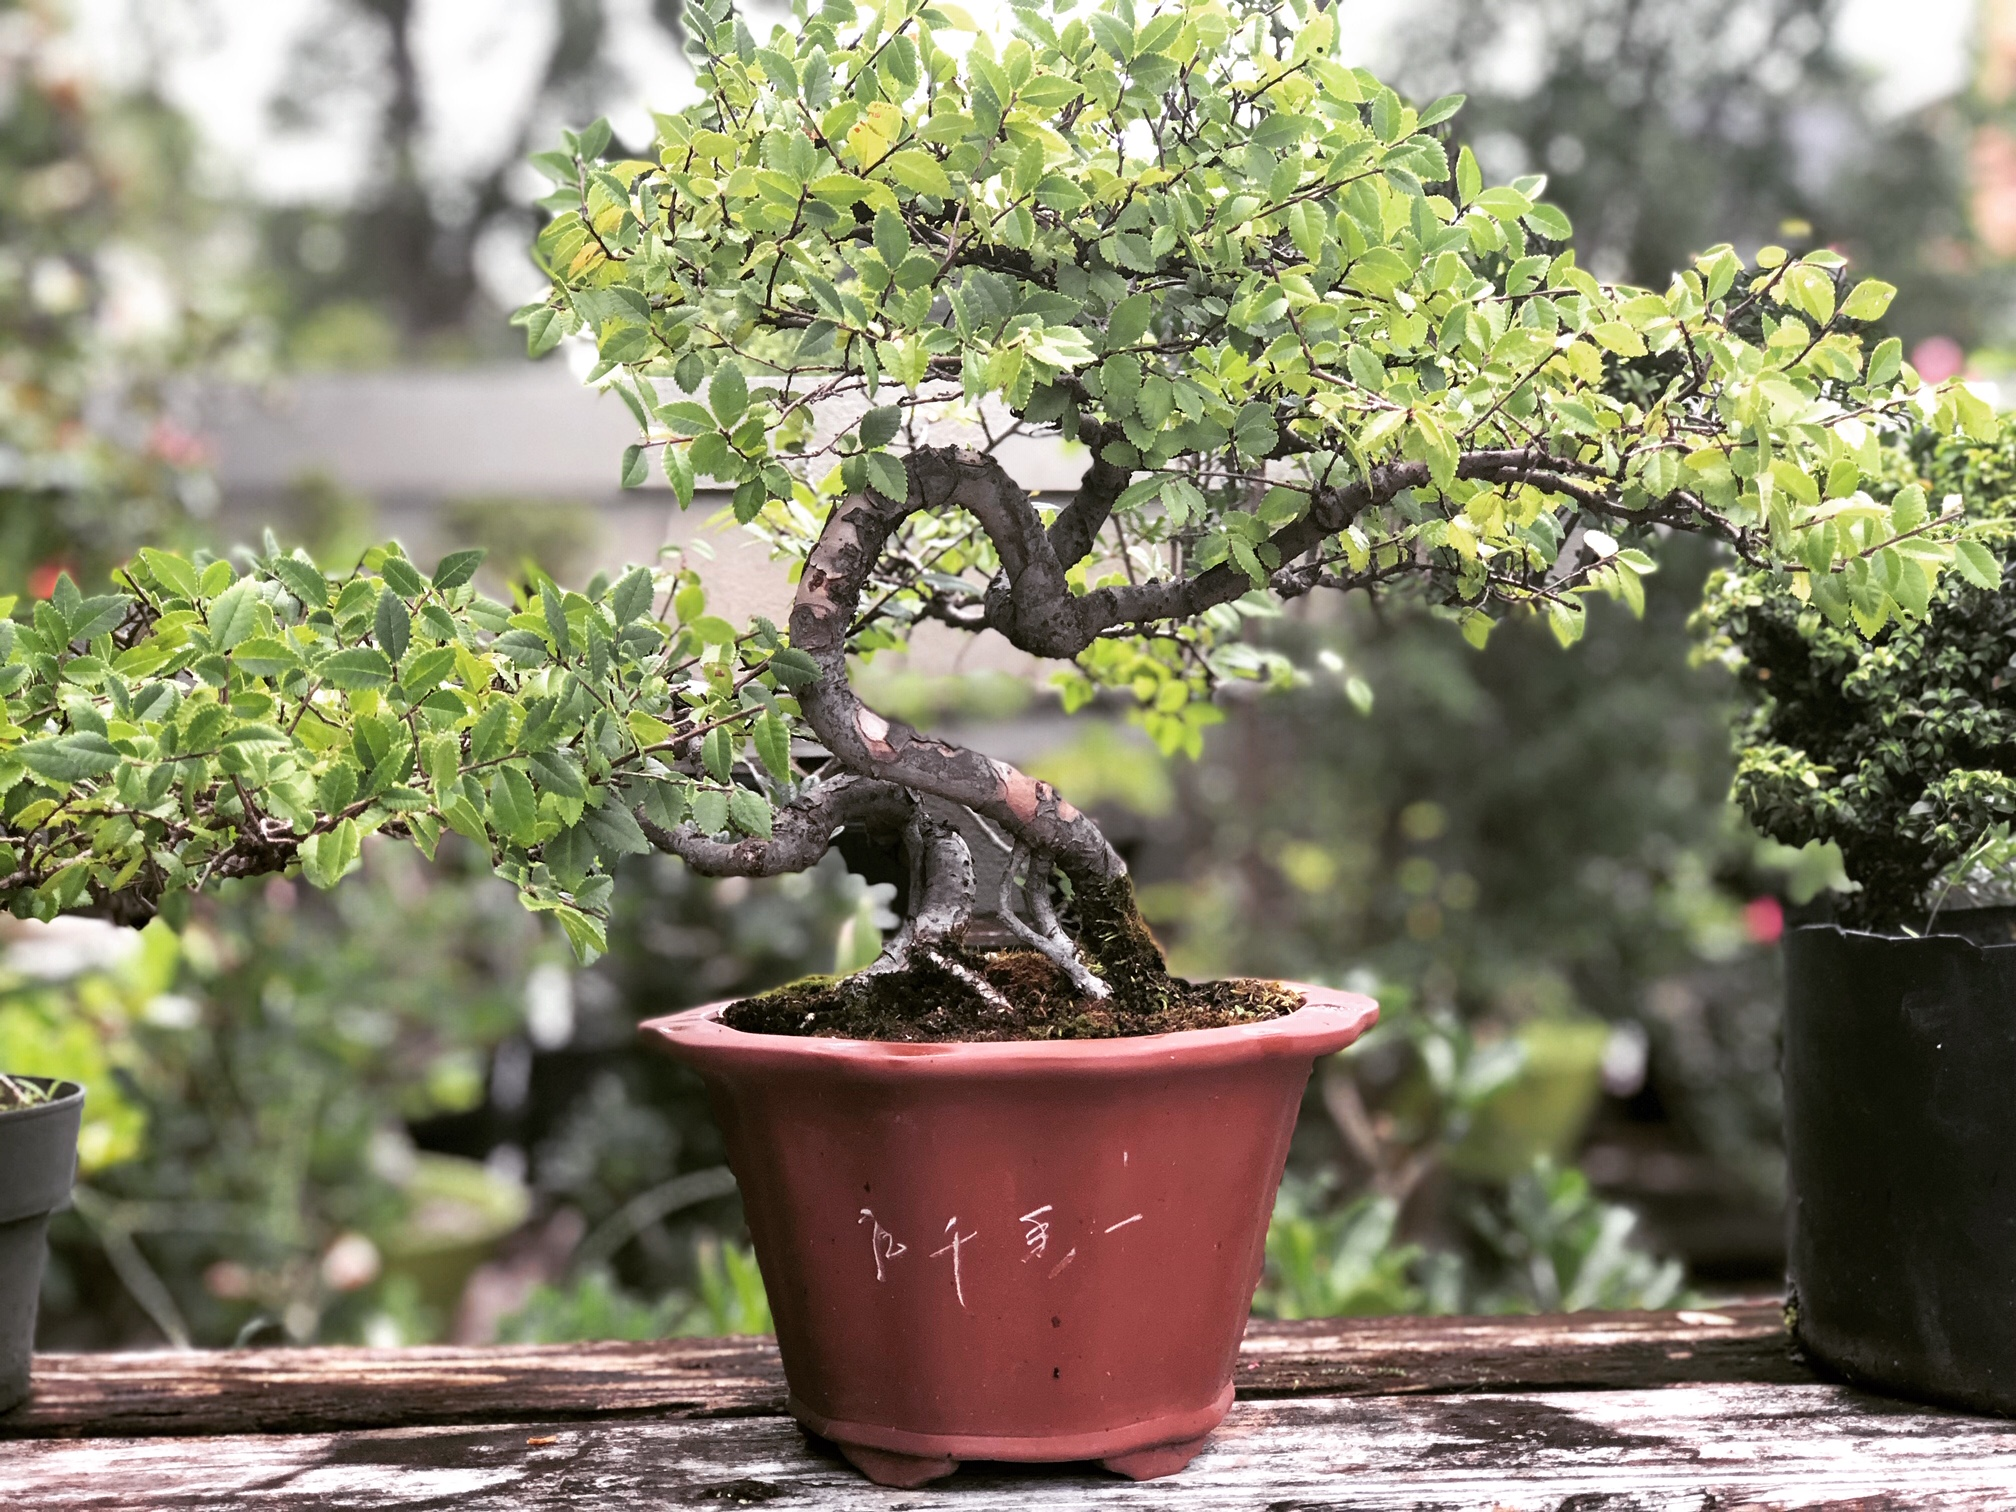 One of my dad's bonsai plants.